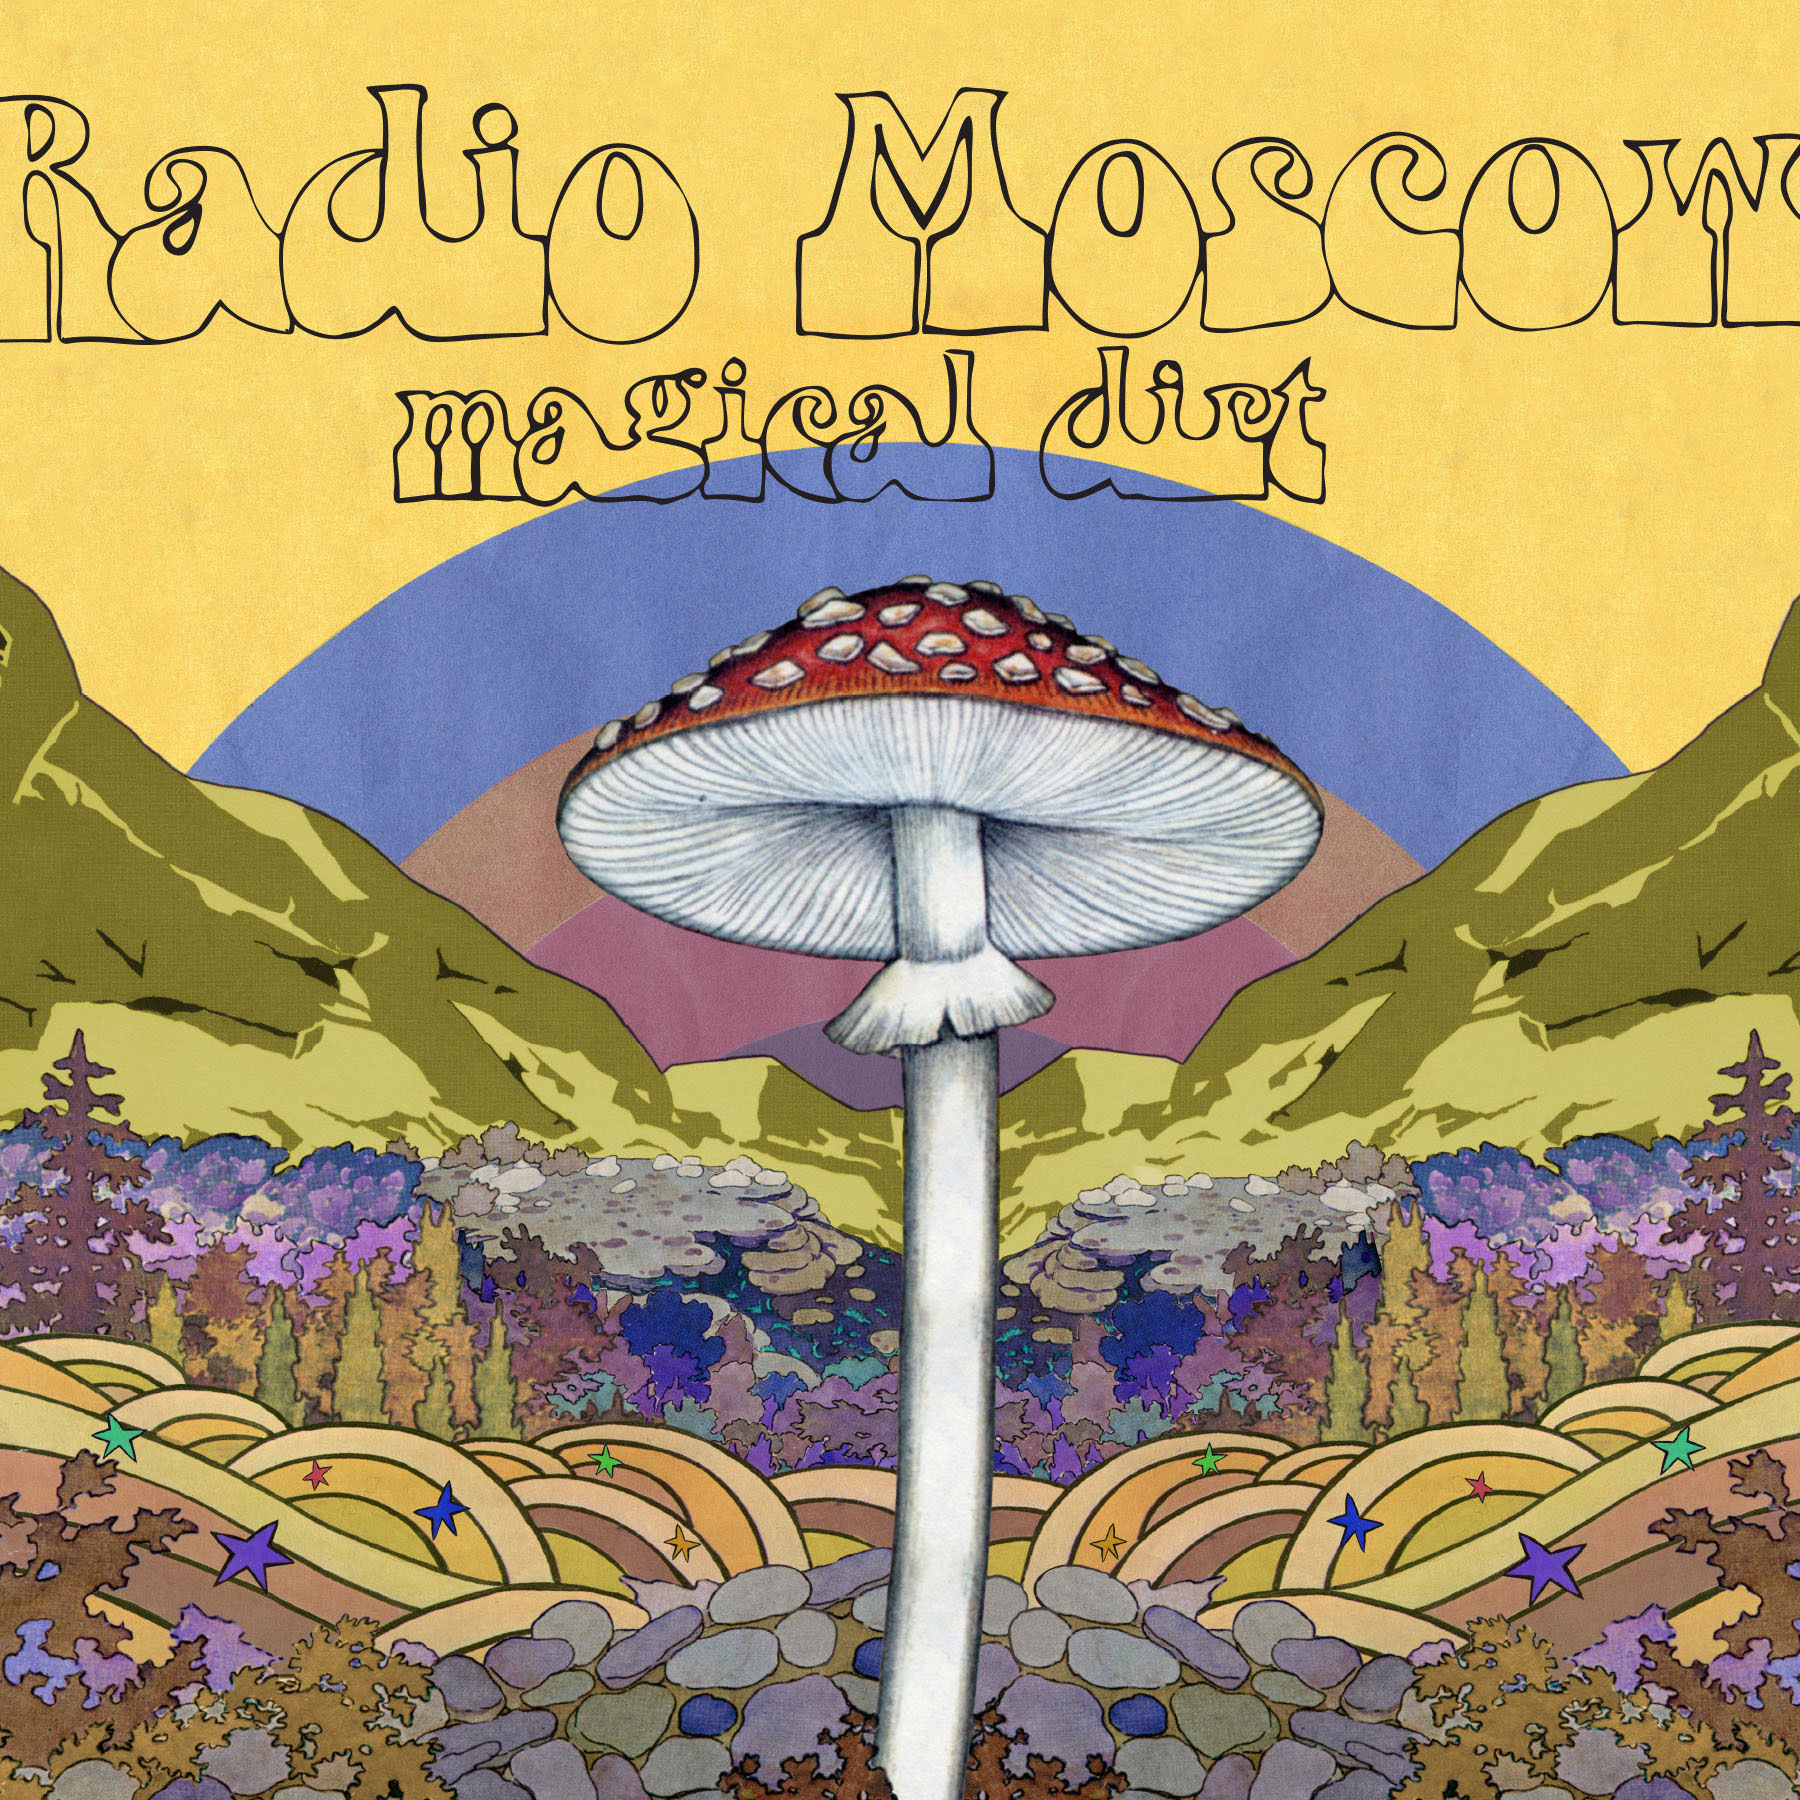 radio-moscow-magical-dirt